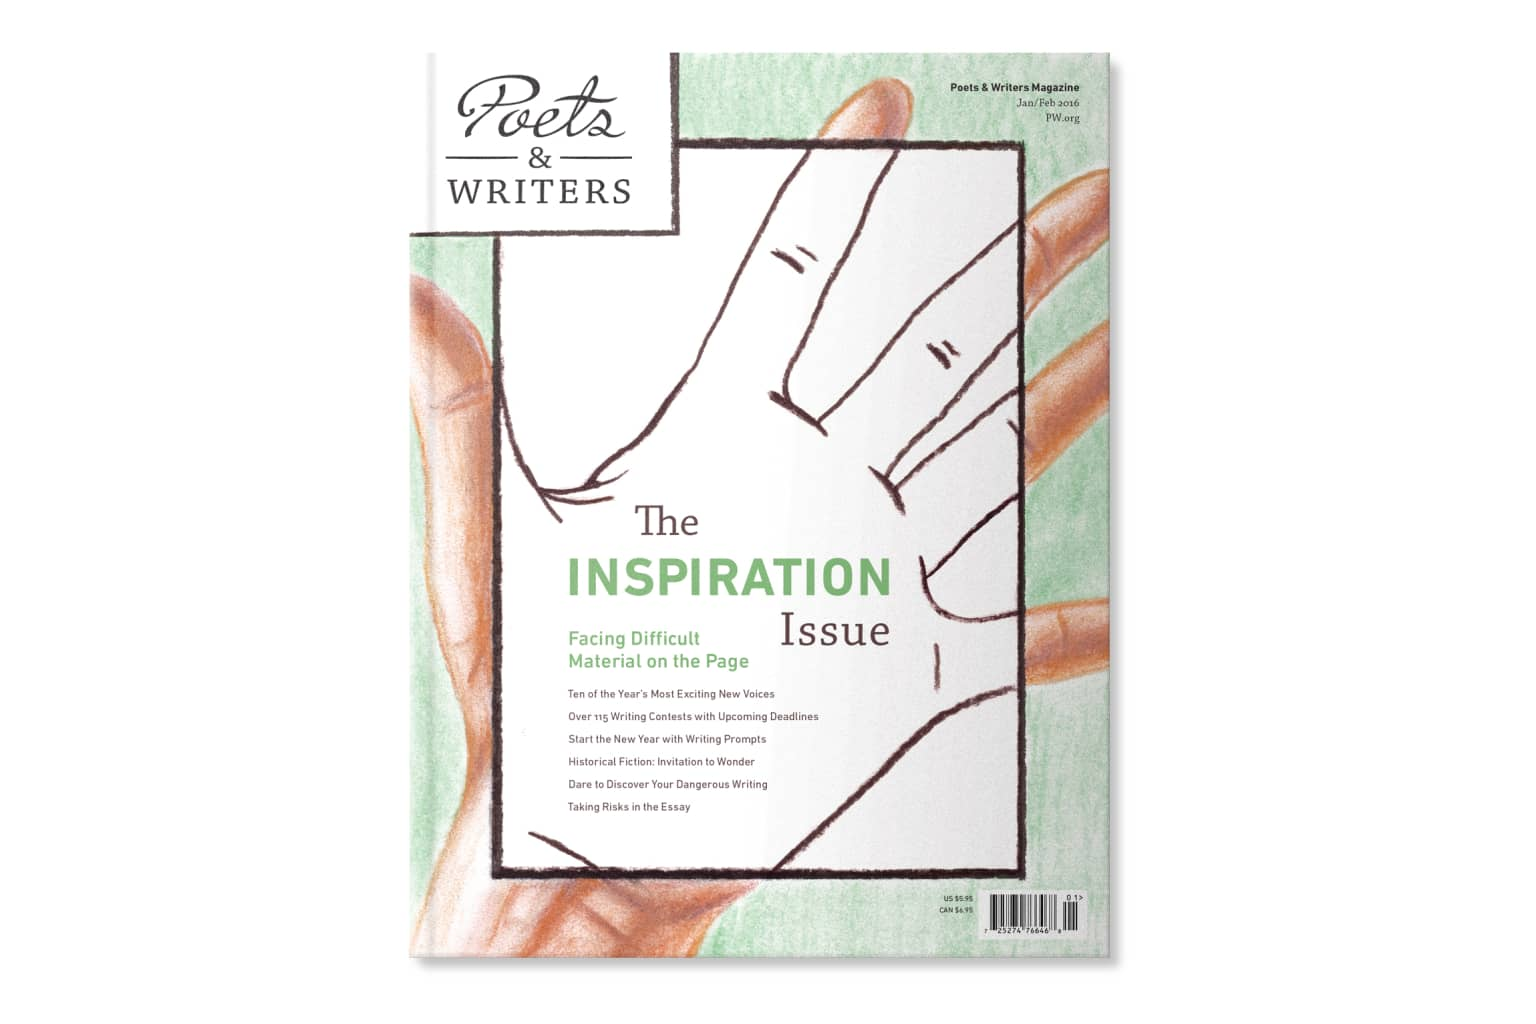 Poets & Writers Magazine: The Inspiration Issue